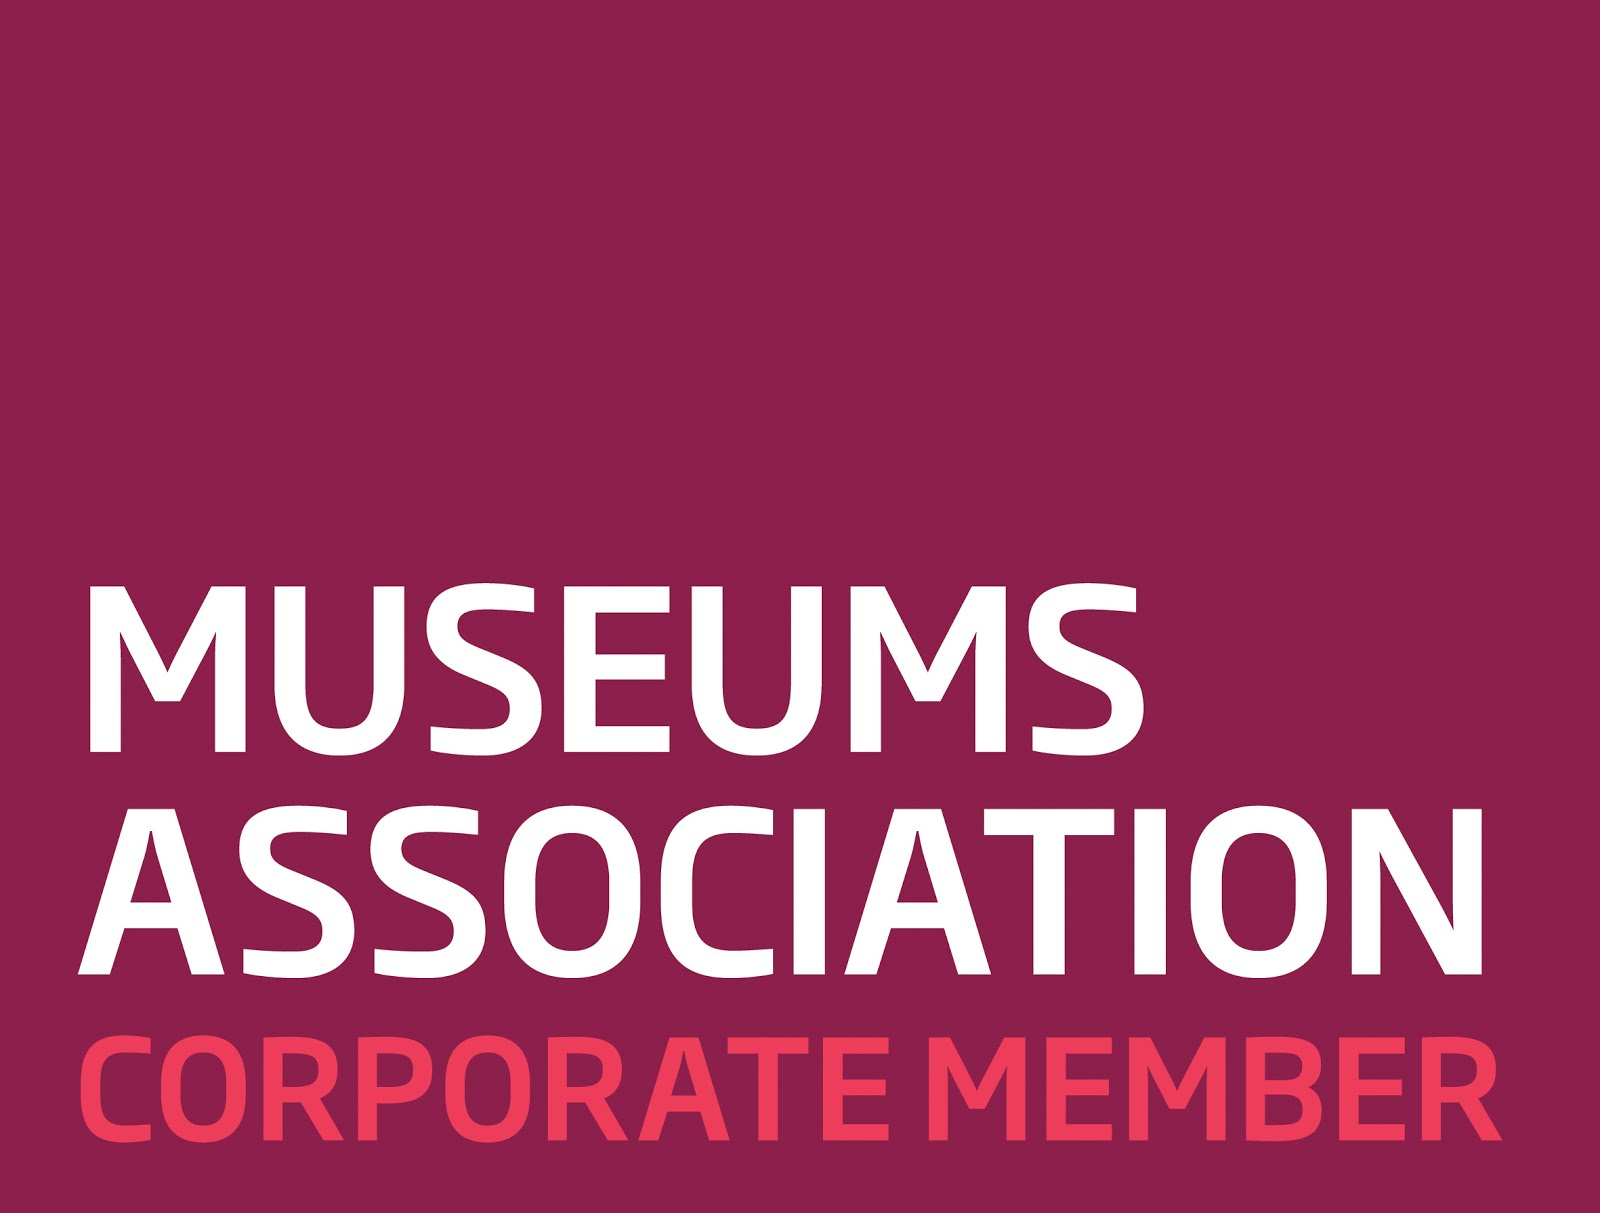 Vastari connects collectors and museum curators for exhibitions and is a member of the Musuems Association